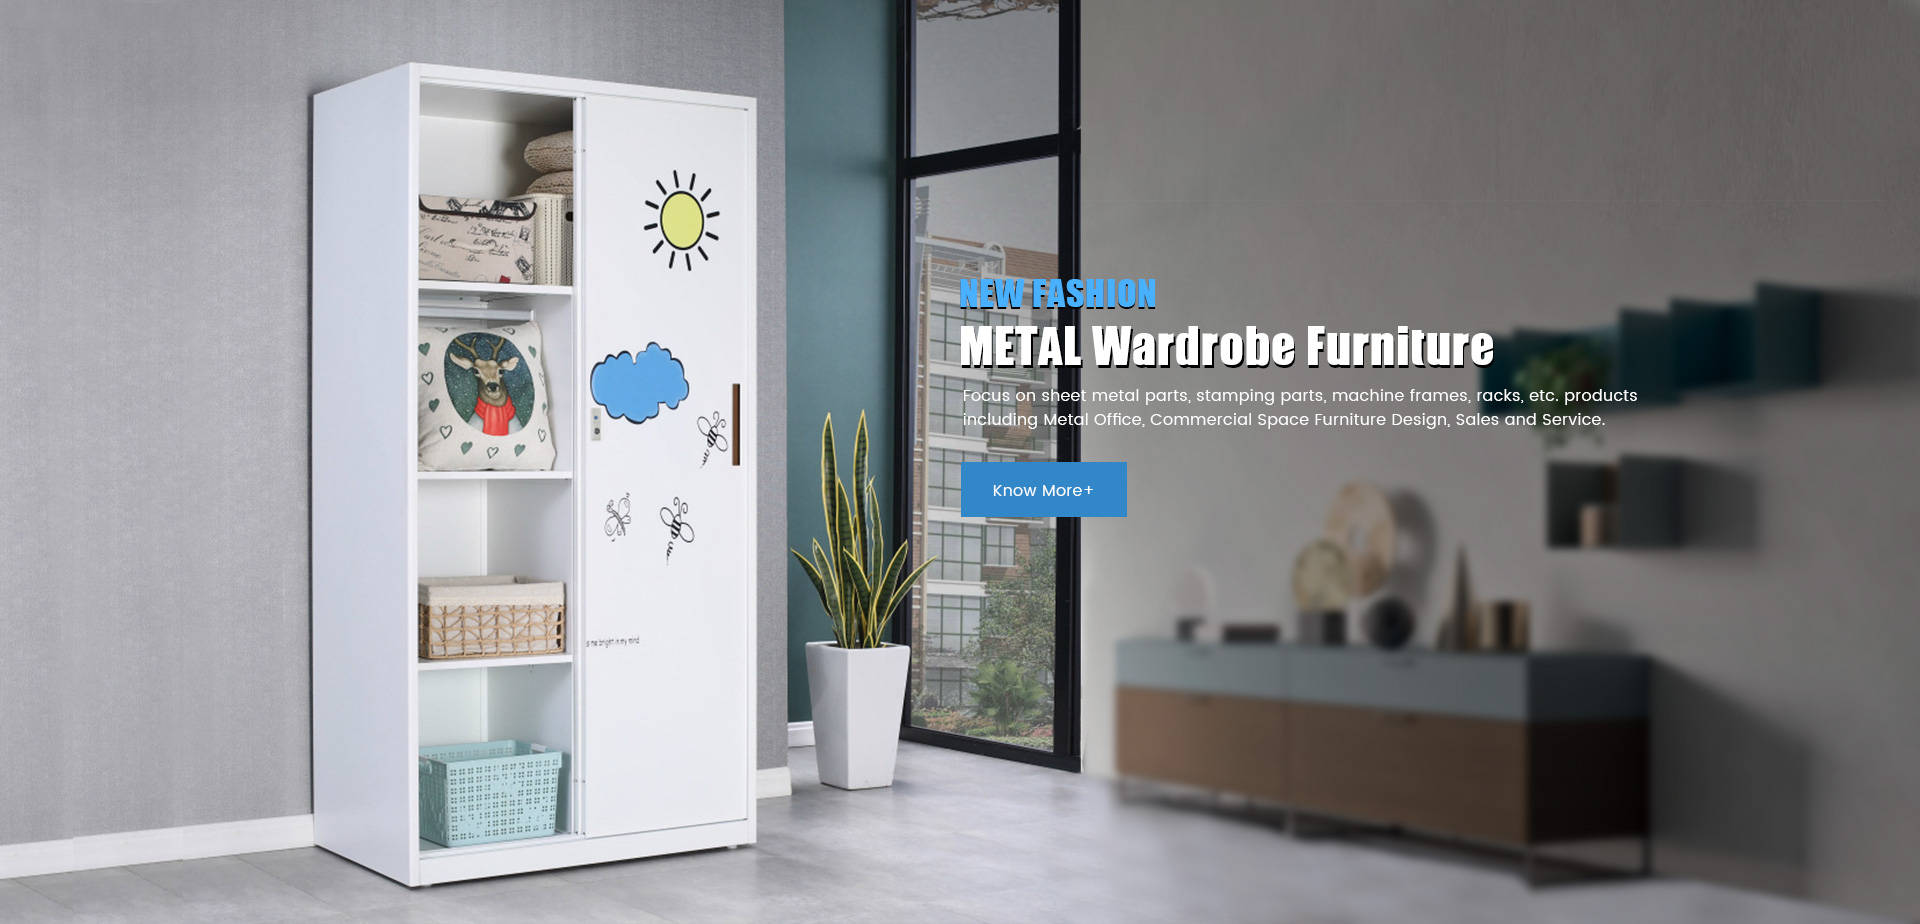 Metal Wardrobe Furniture